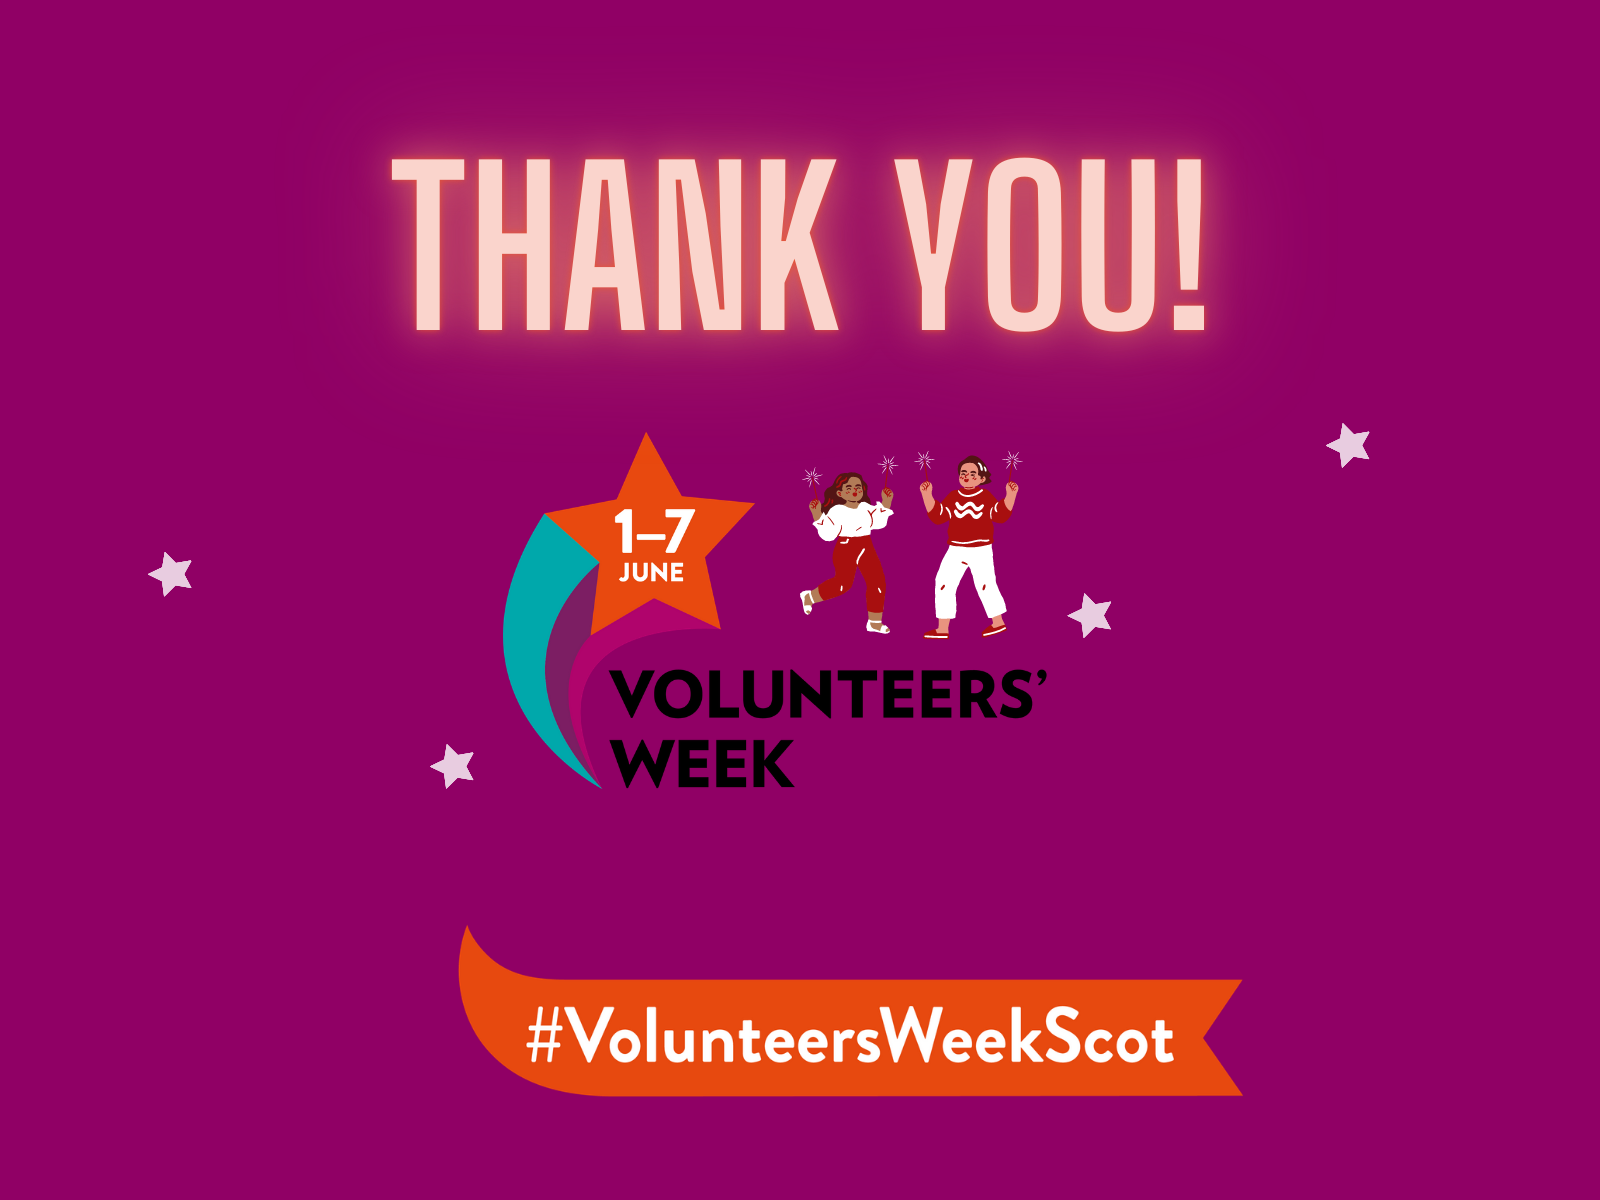 » A TIME TO SAY THANK YOU: CELEBRATING VOLUNTEERS WEEK 2021!